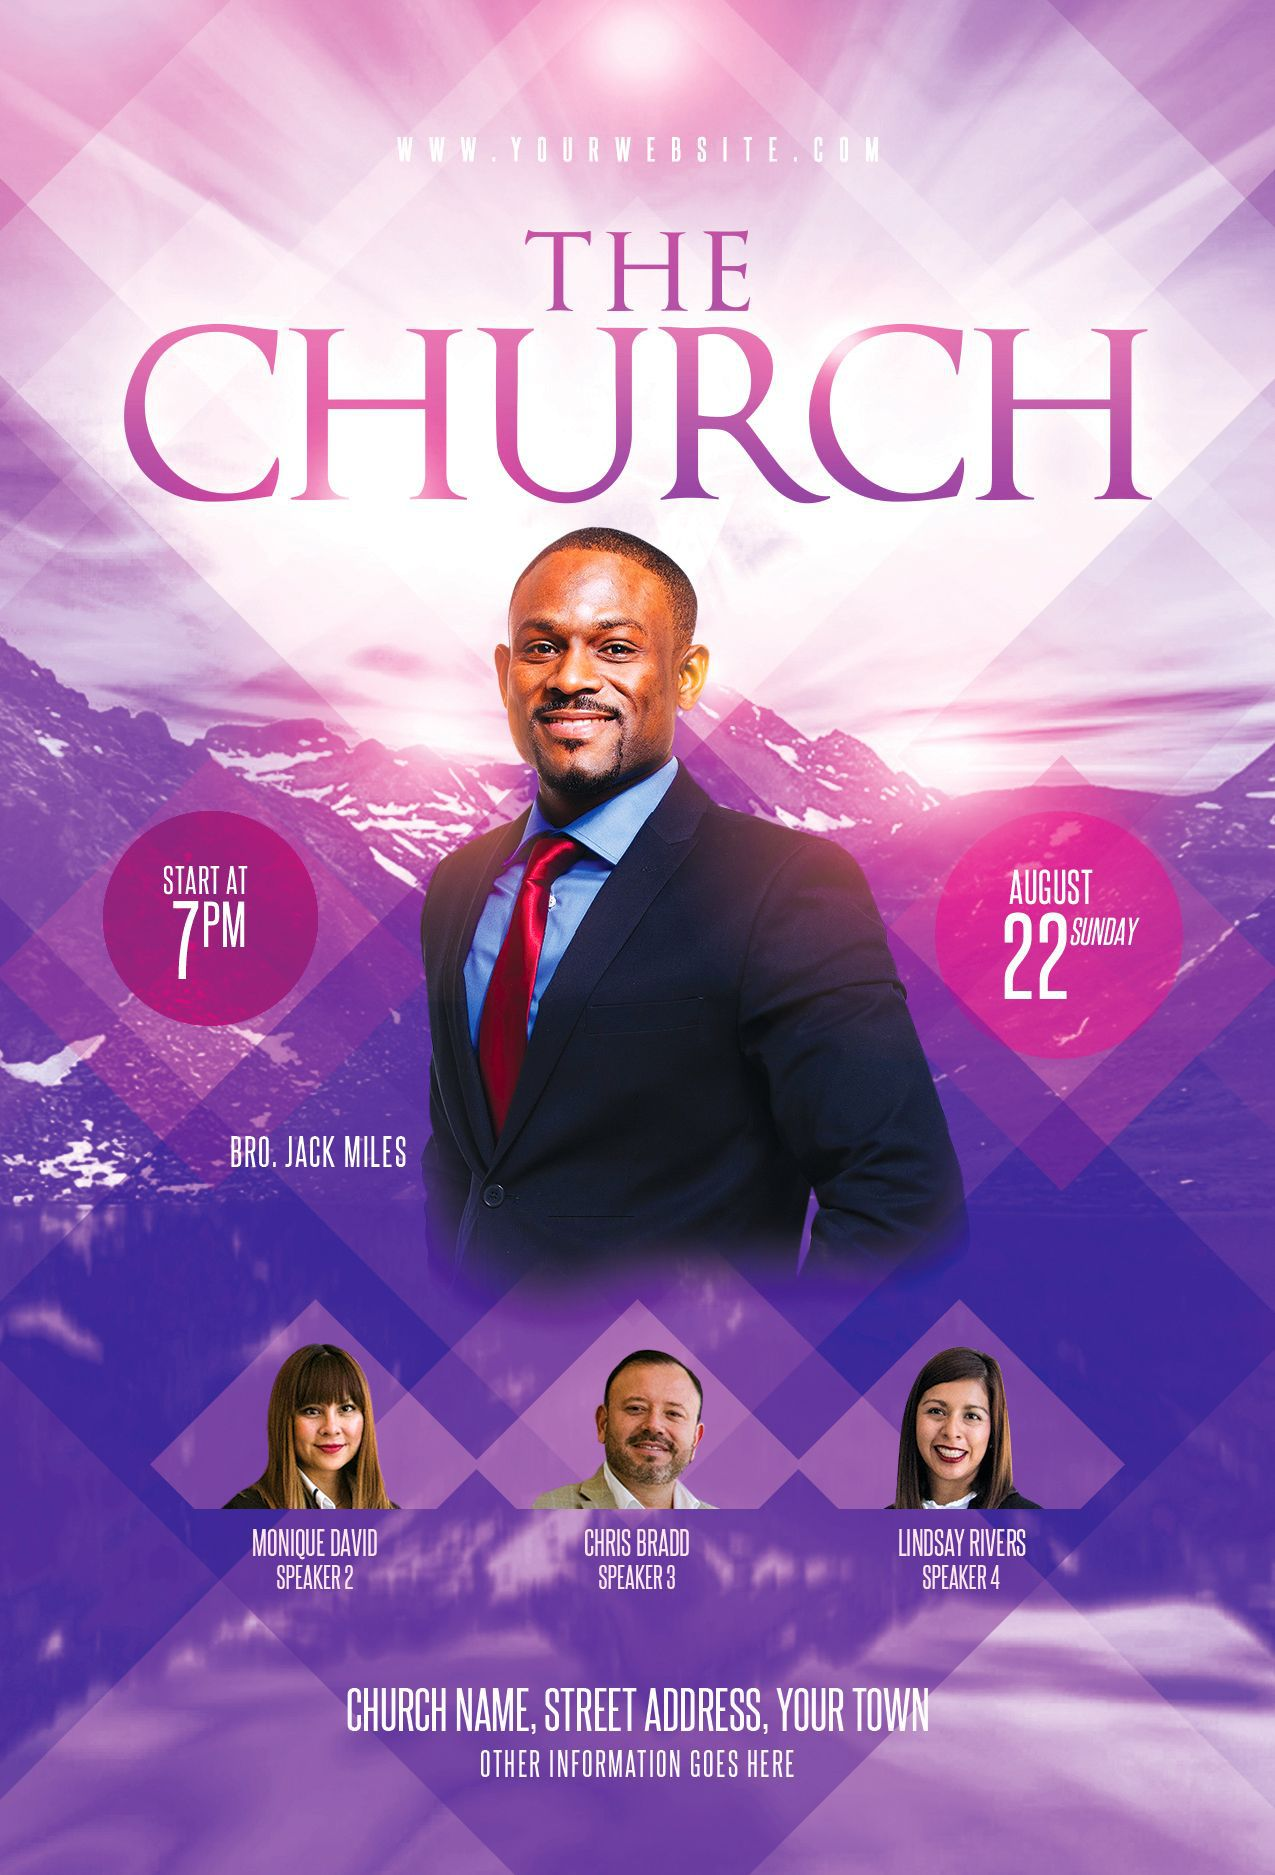 002 Magnificent Church Flyer Template Photoshop Free Image  PsdFull